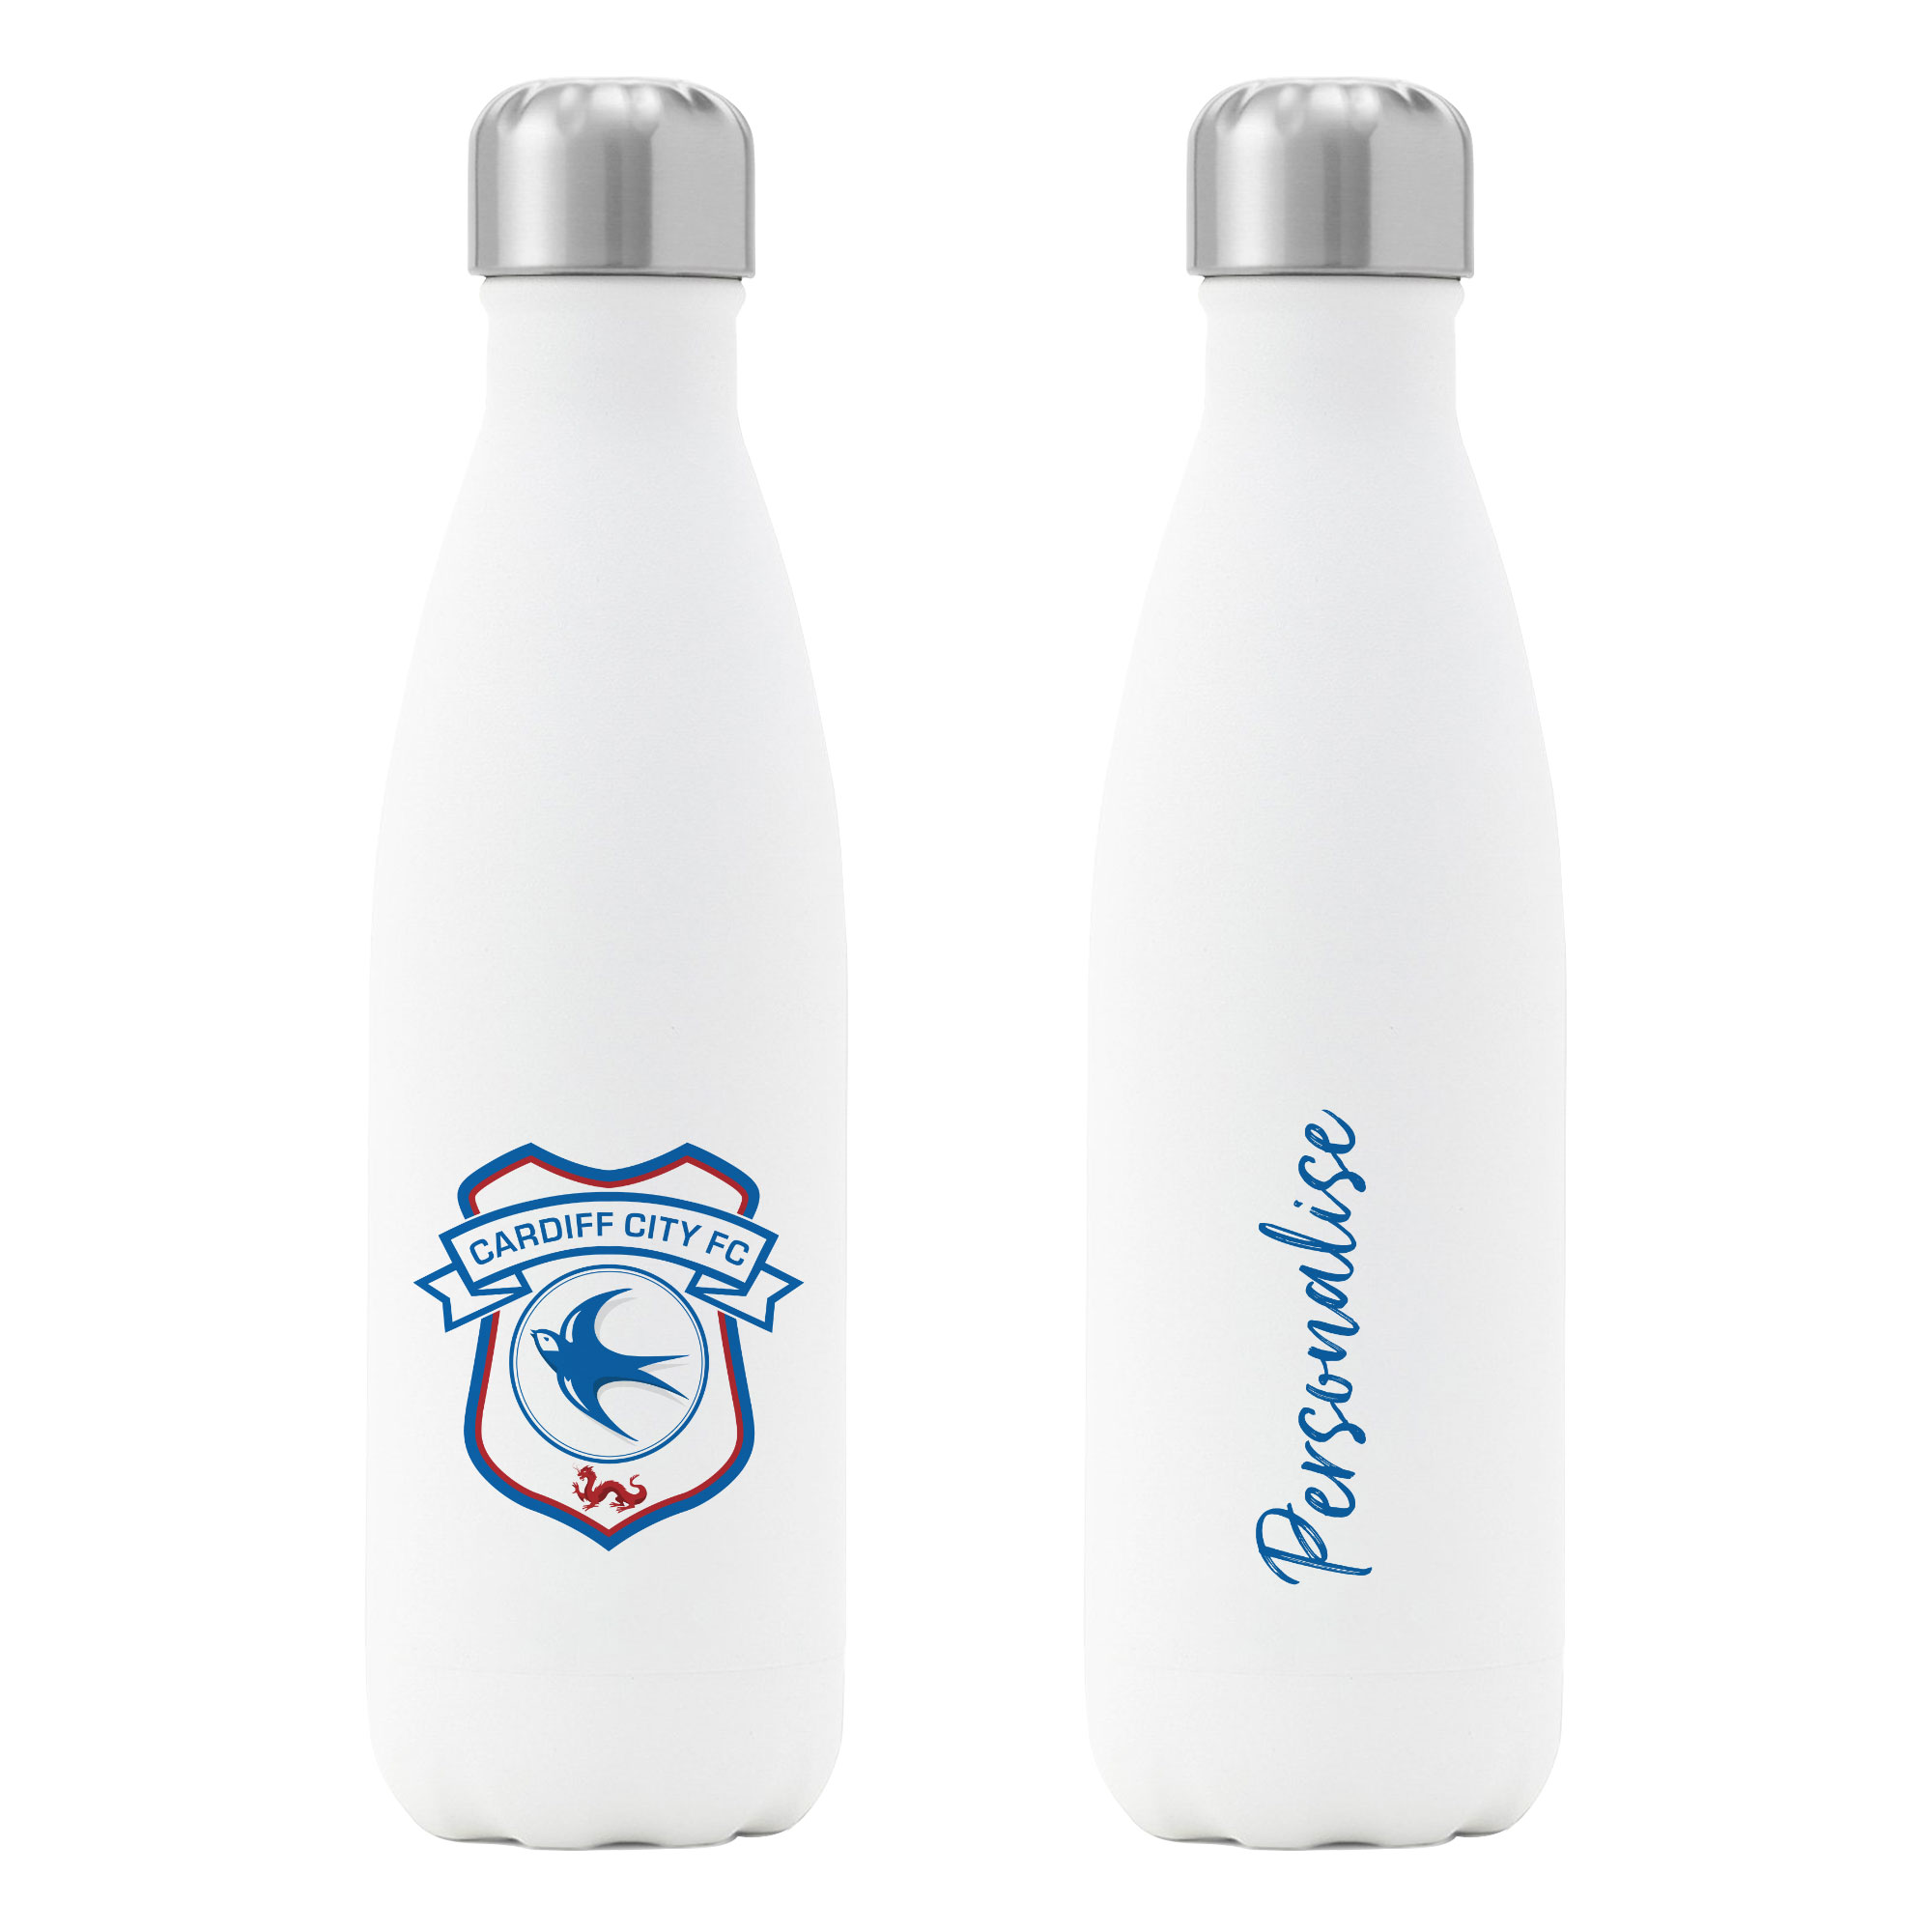 Cardiff City FC Crest Insulated Water Bottle - White